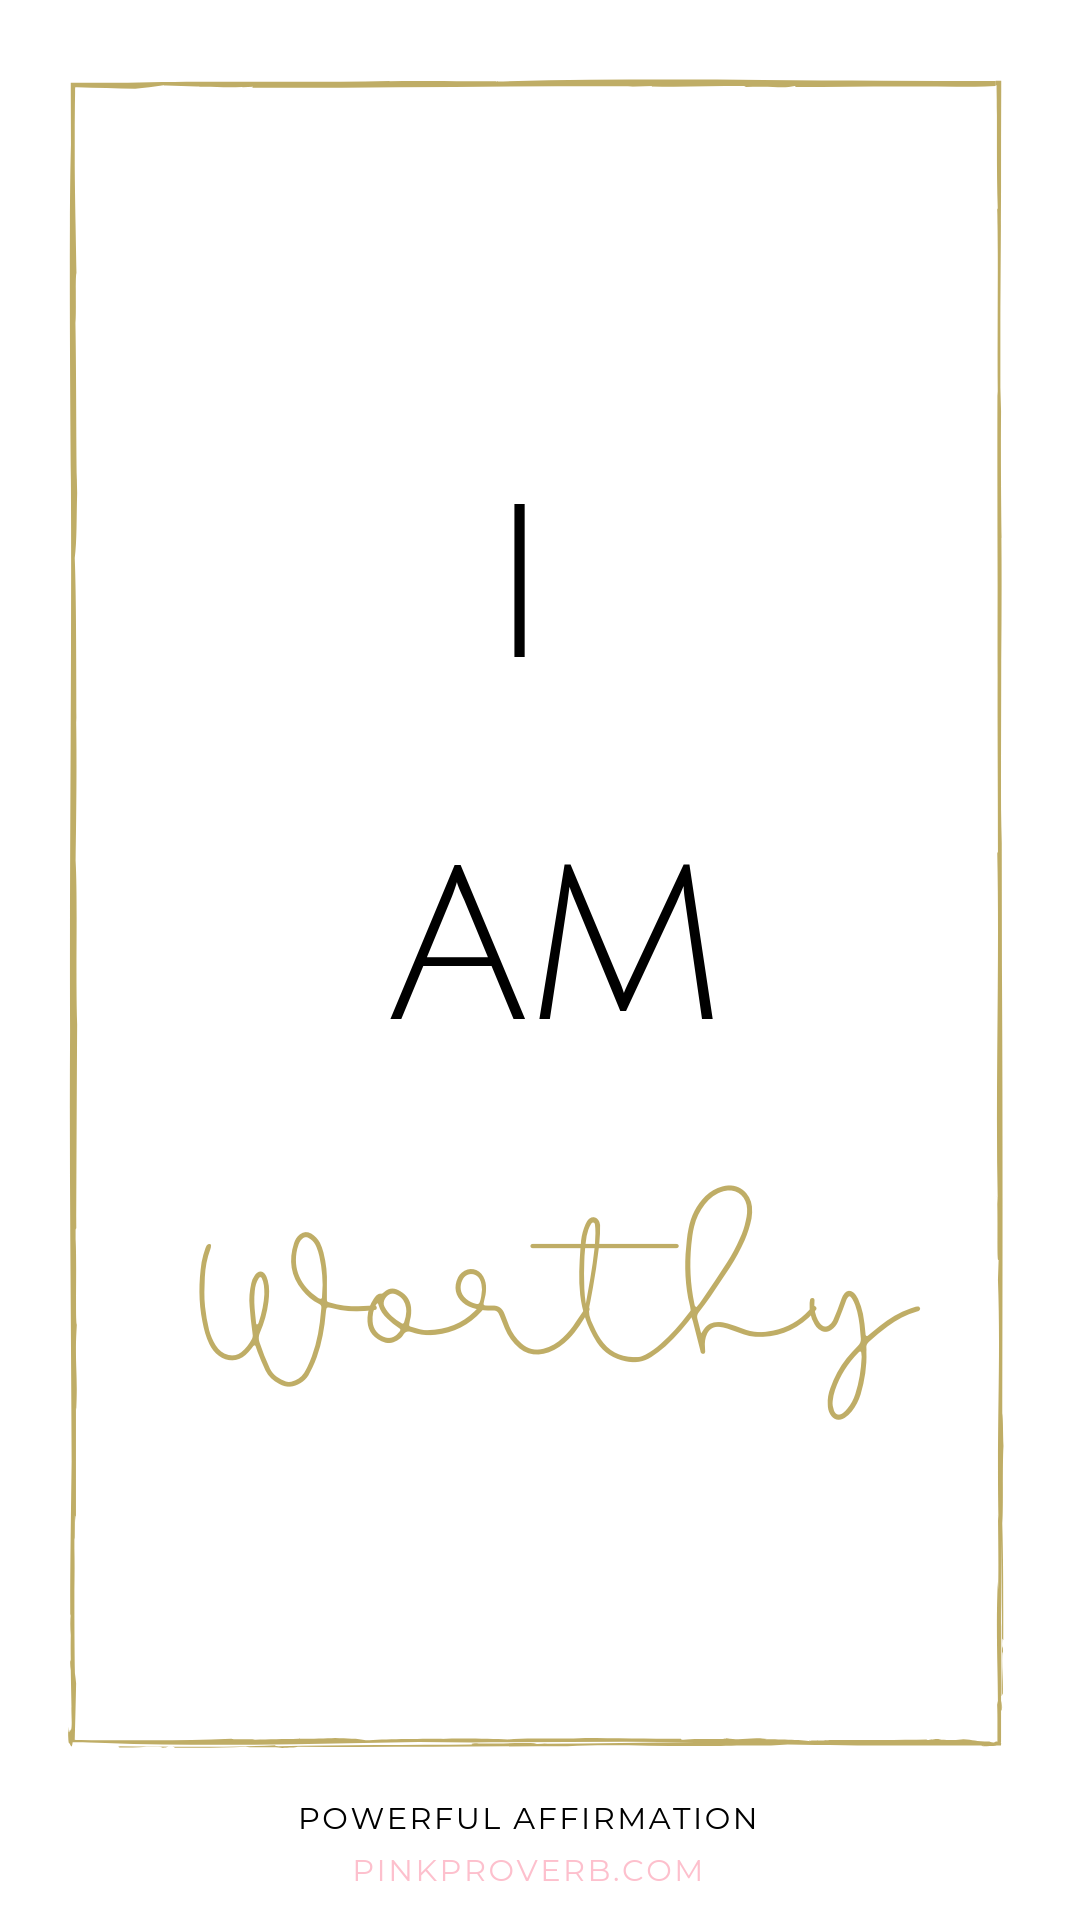 Affirmations To Live By